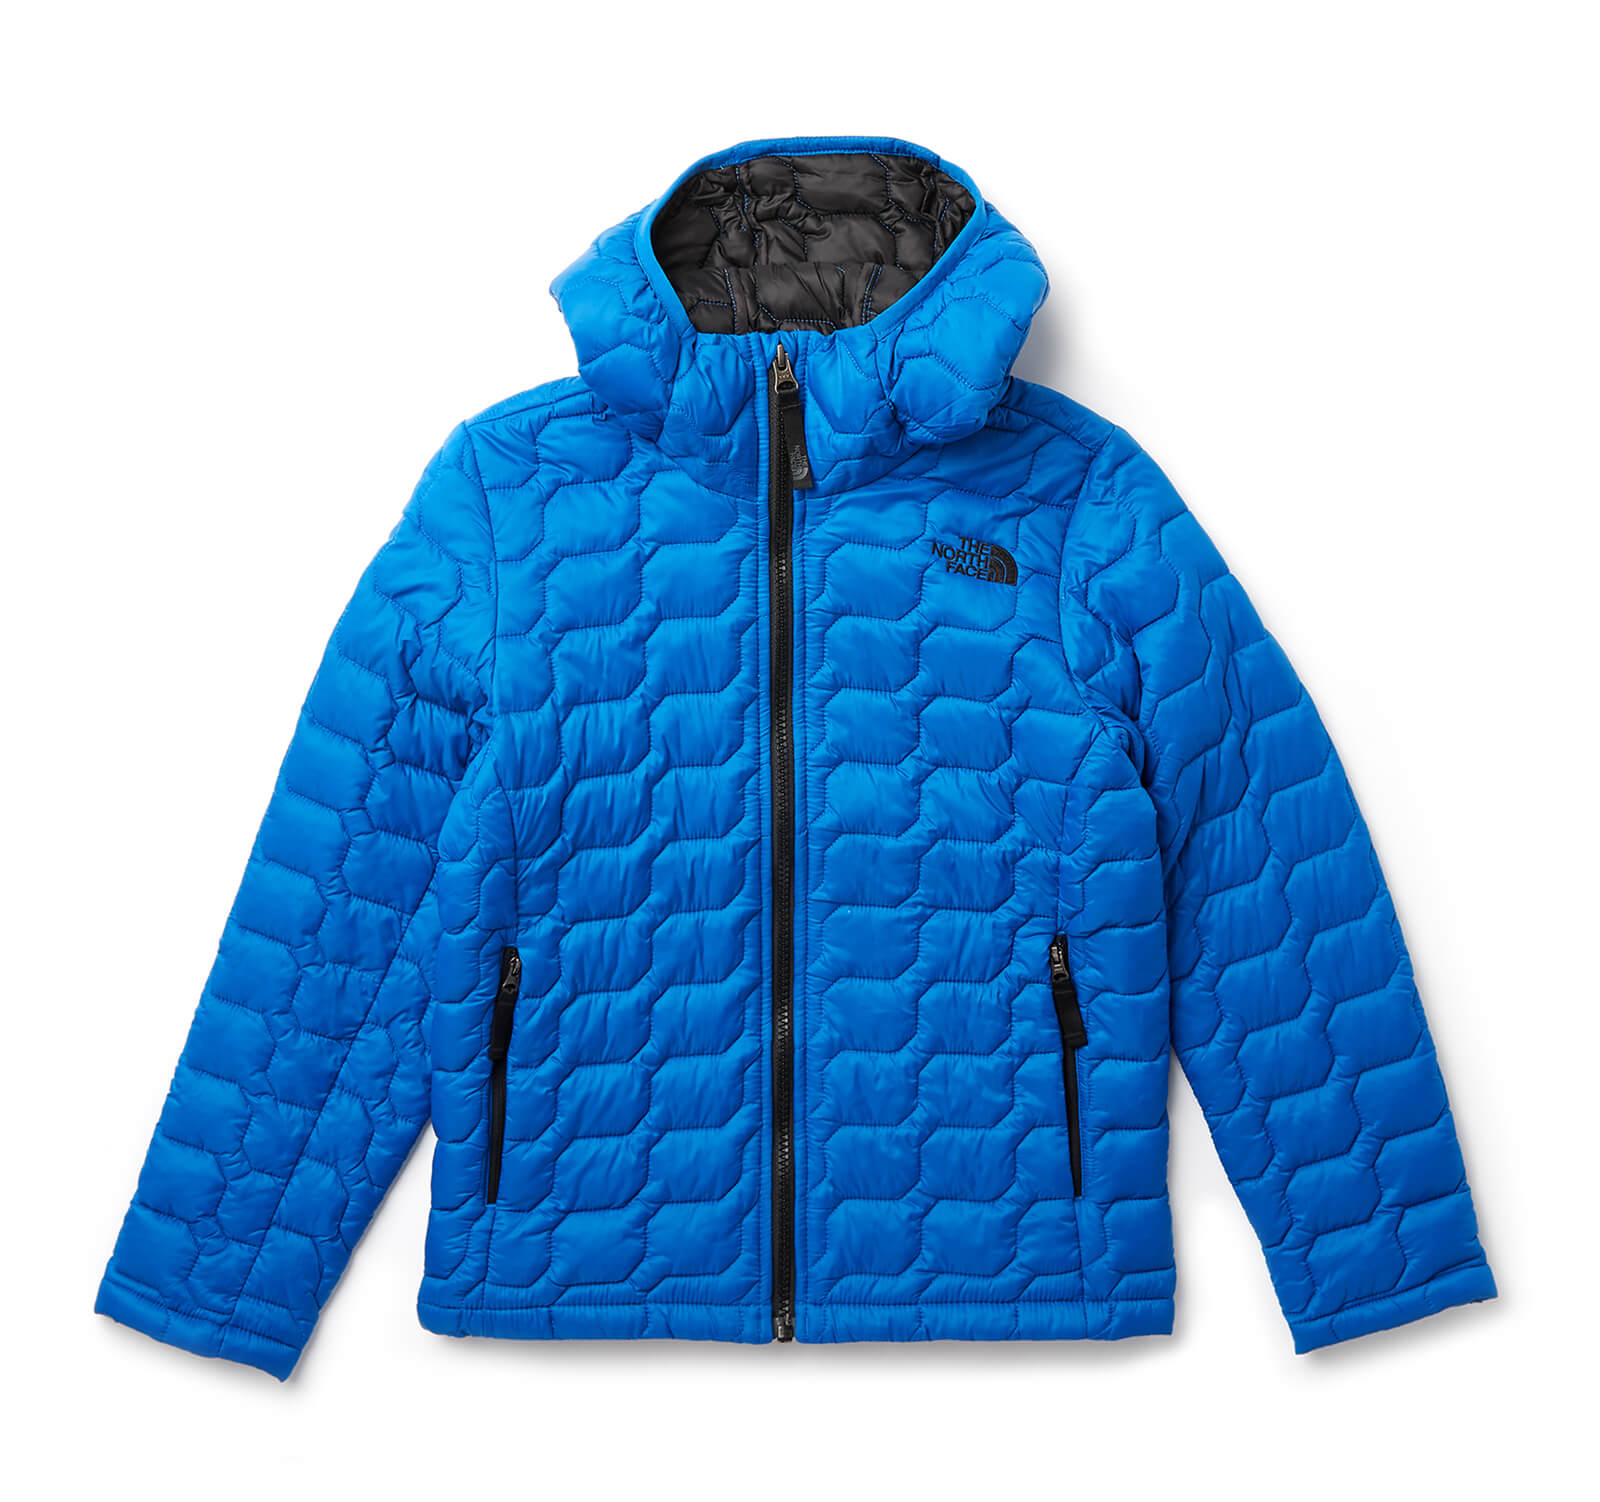 0bb37f7a6 The North Face Boys' Thermoball Hoody - Turkish Sea